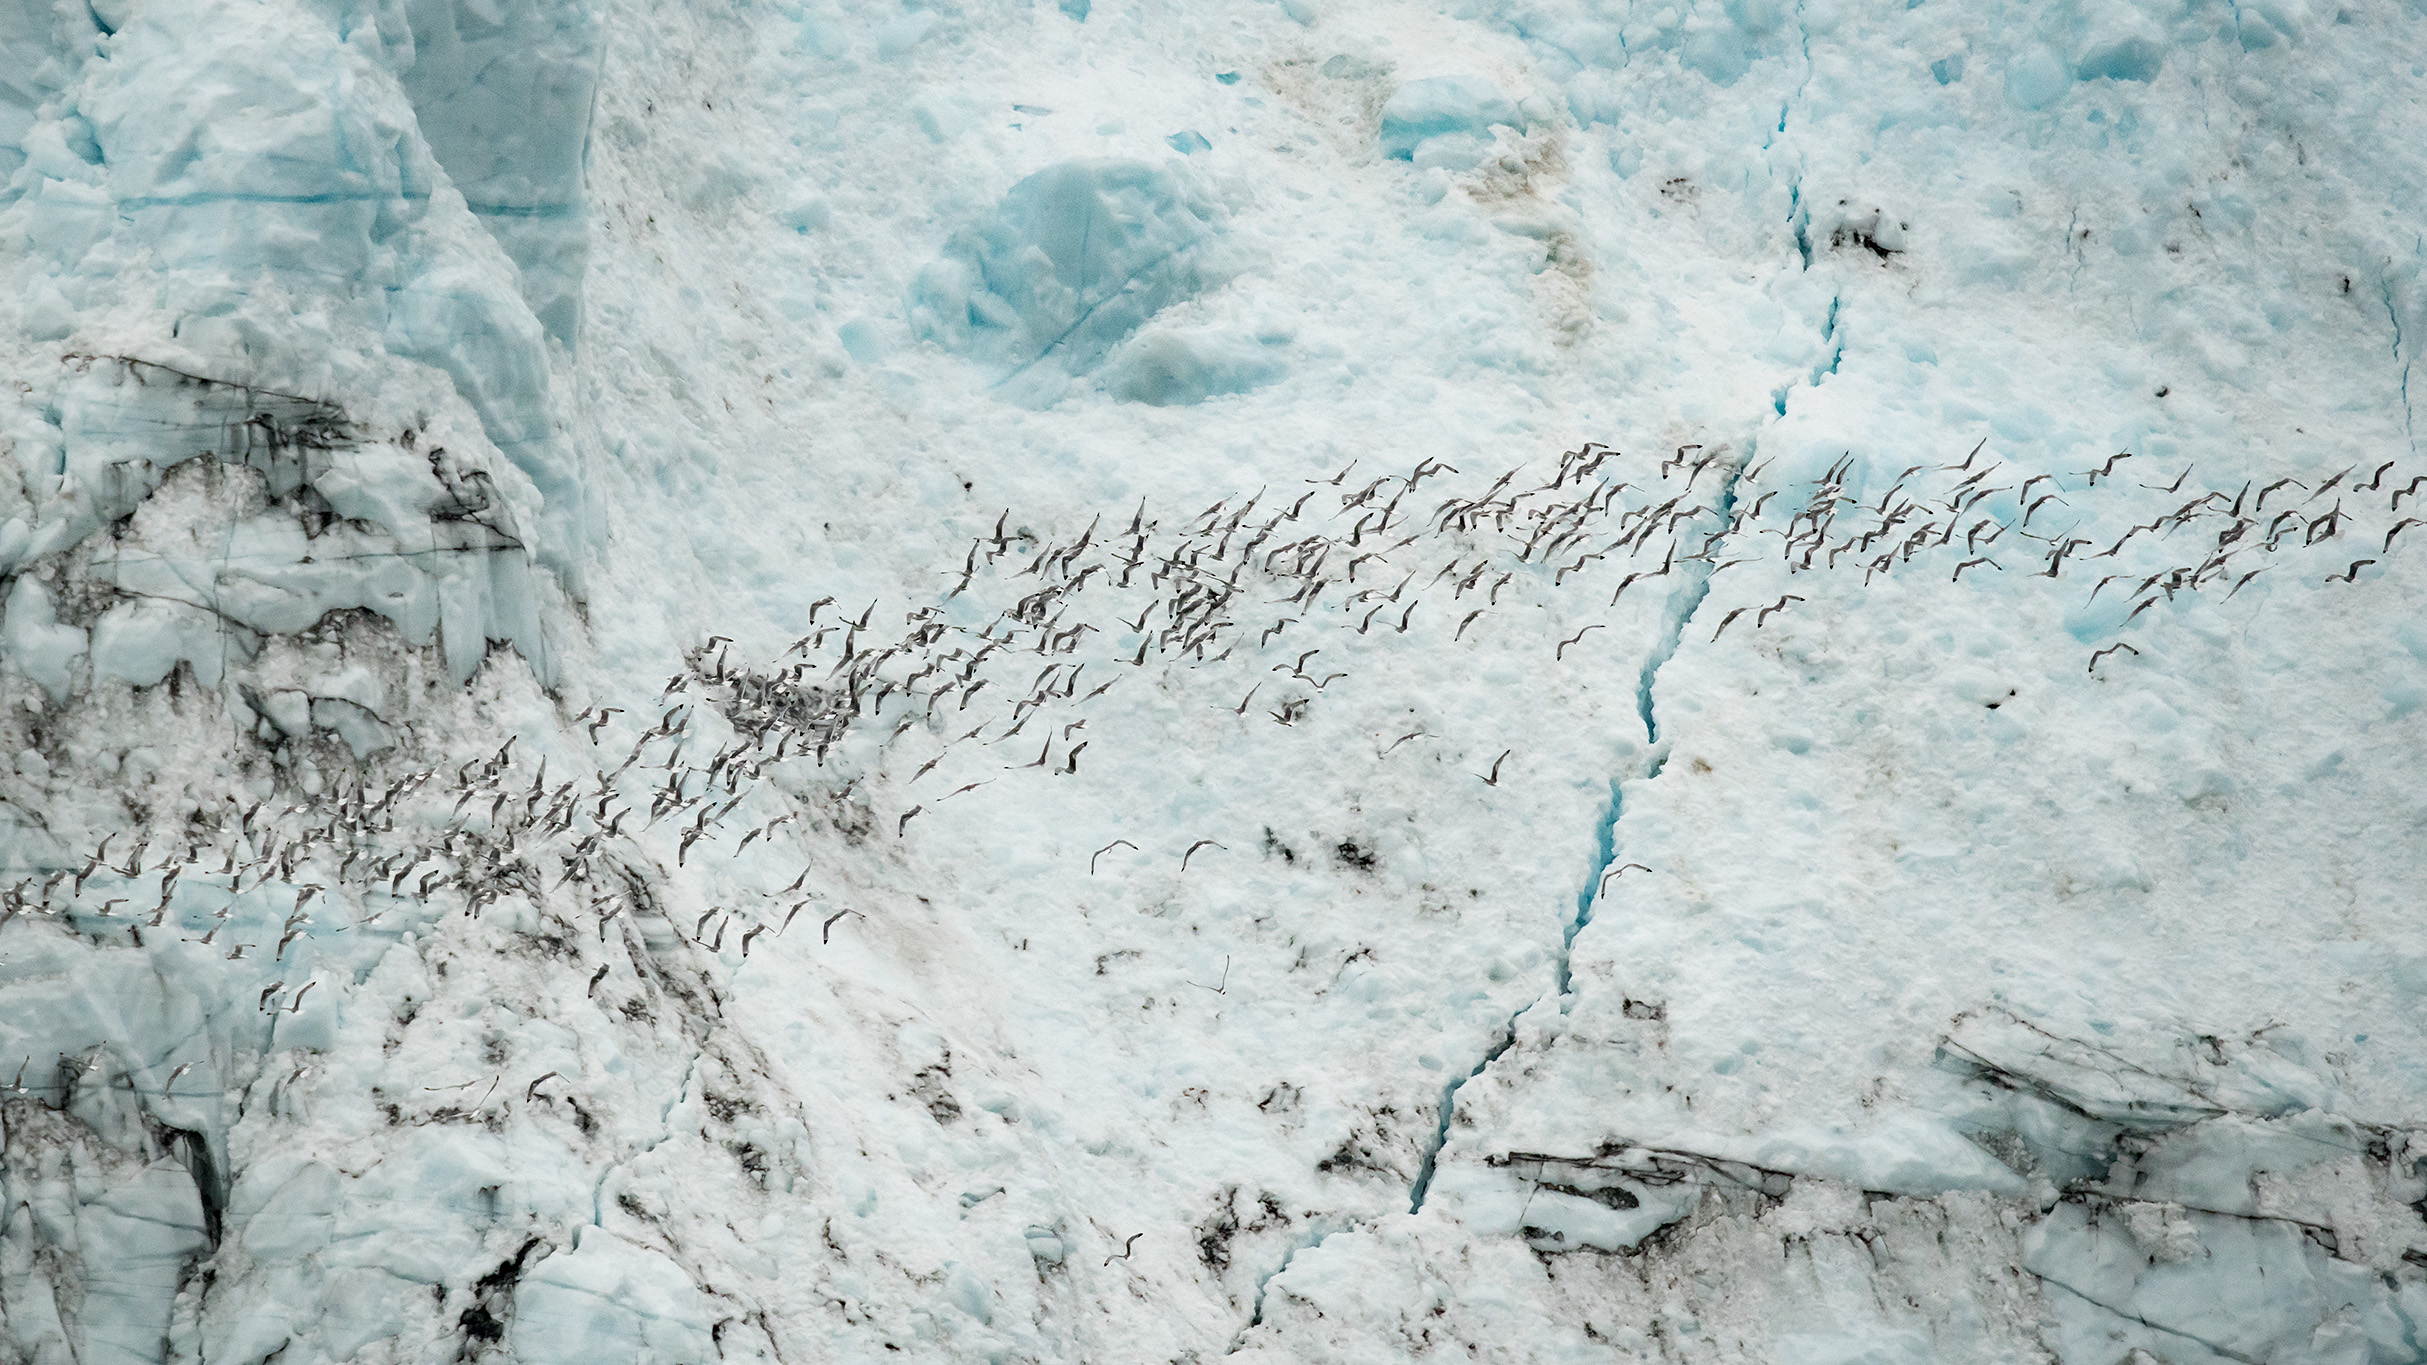 To get a sense of scale…a huge flock of gull sized Kittiwakes are dwarfed by just a small section of the Margerie Glacier.